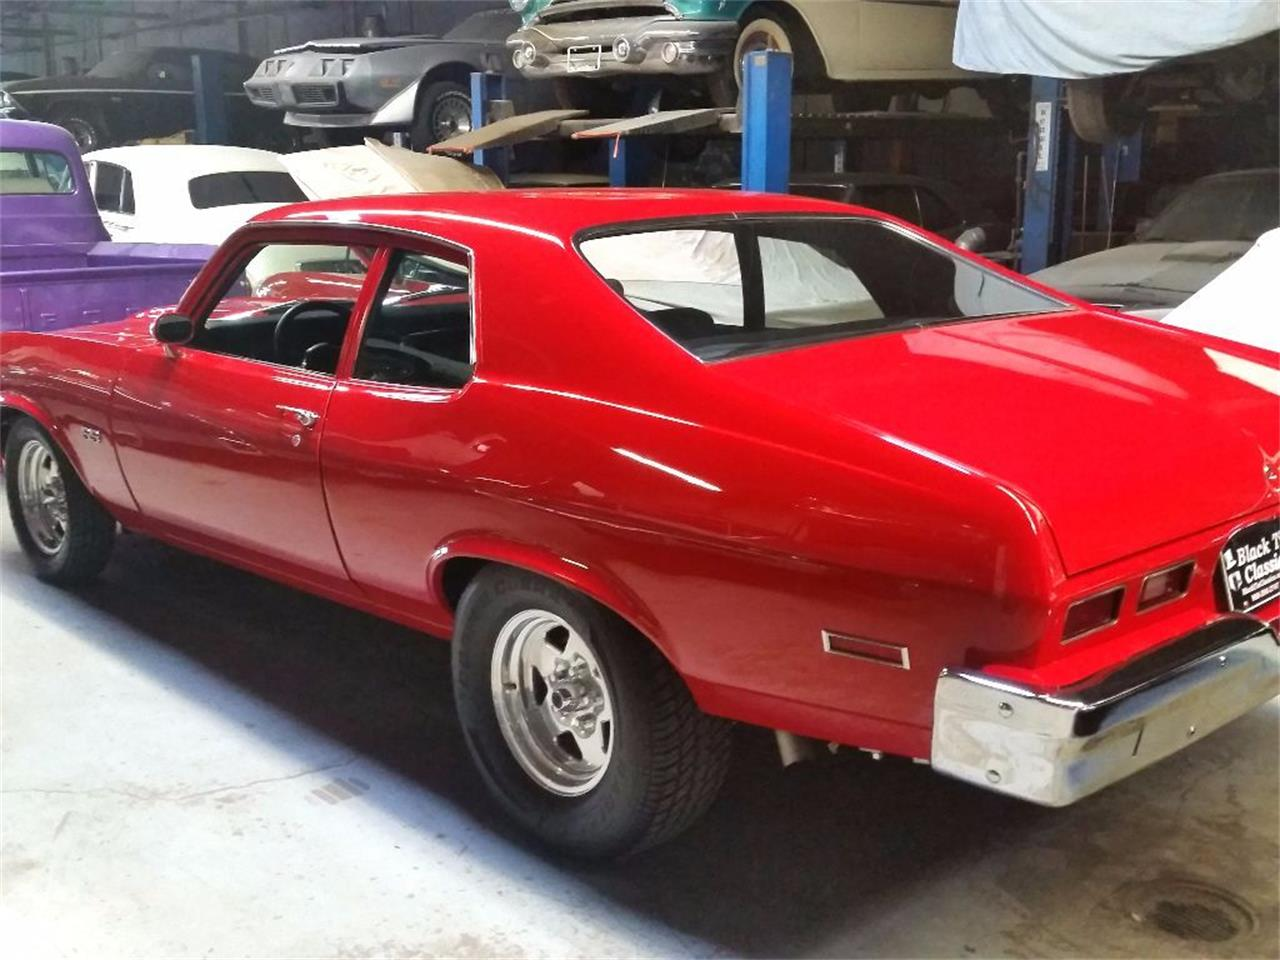 Large Picture of '73 Chevrolet Nova located in New Jersey - $33,999.00 - OCOA